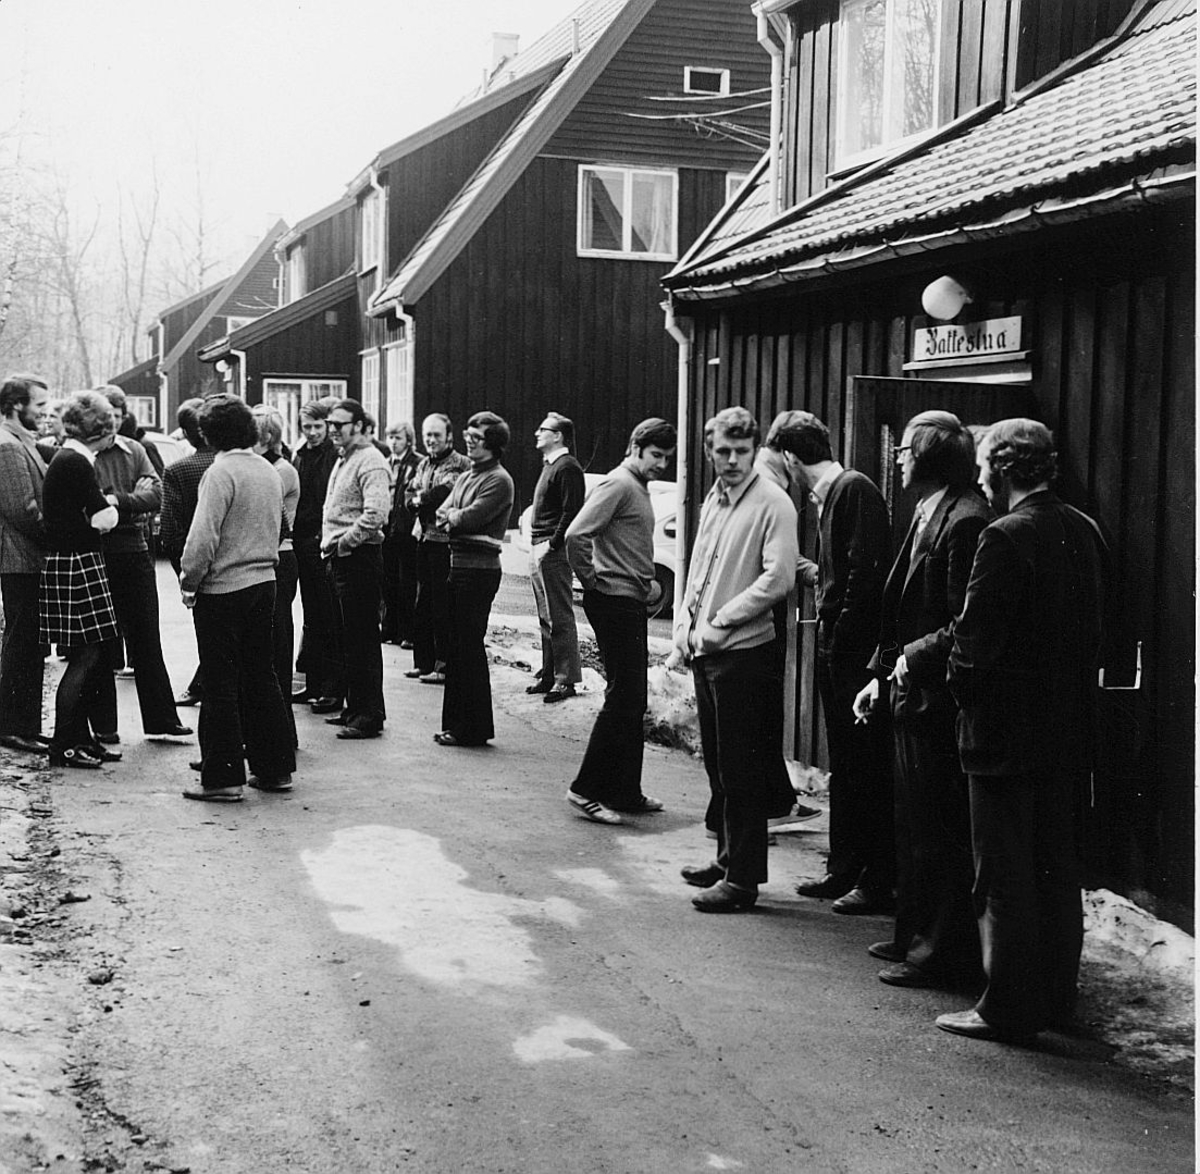 postskolen, Sjøstrand bad, april 1974, eksteriør, kaffestua, menn, damer